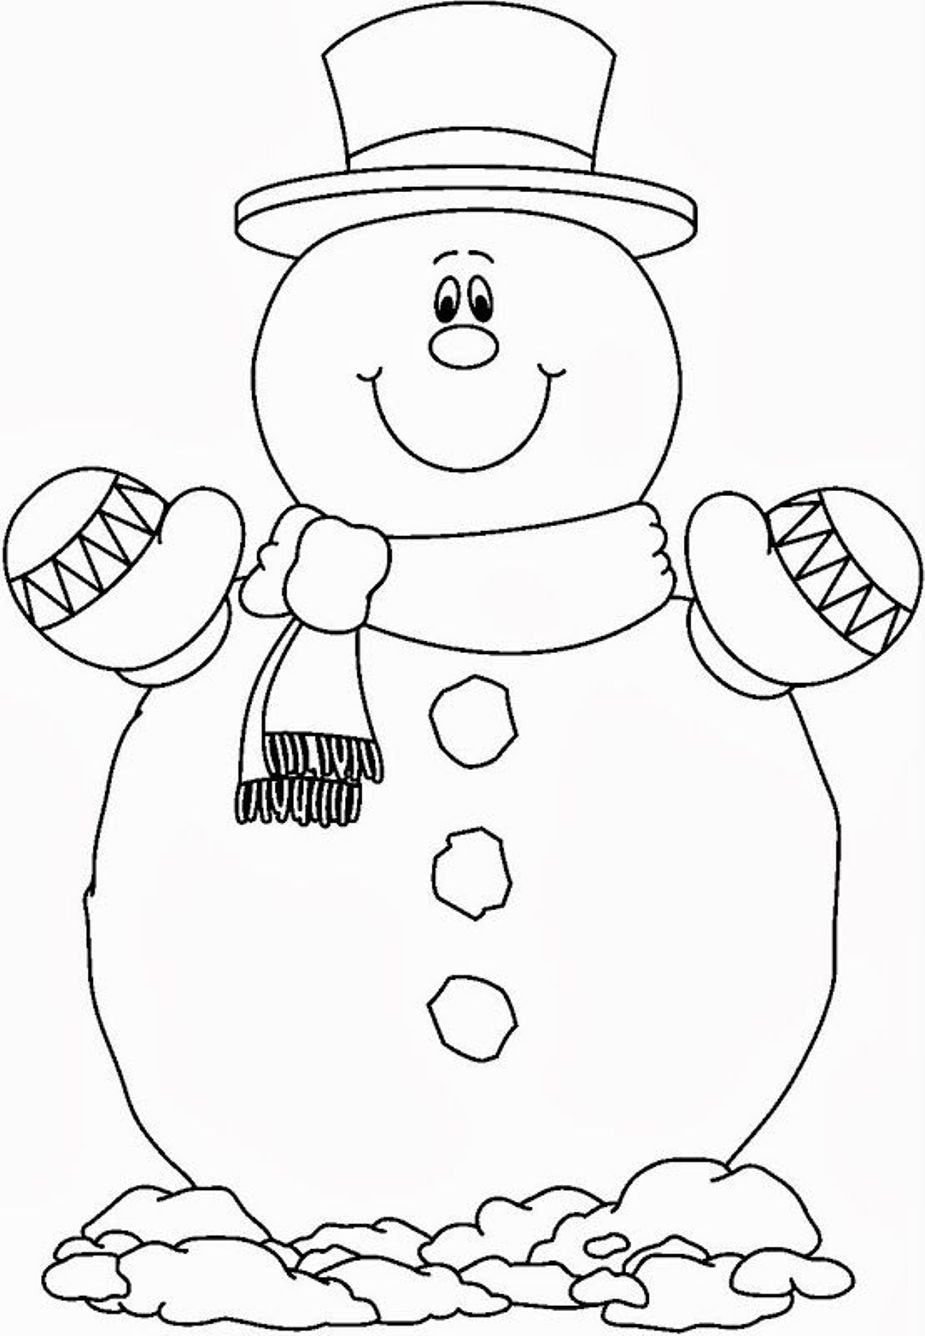 Smilling Snowman Coloring Pages Free Christmas Crafts